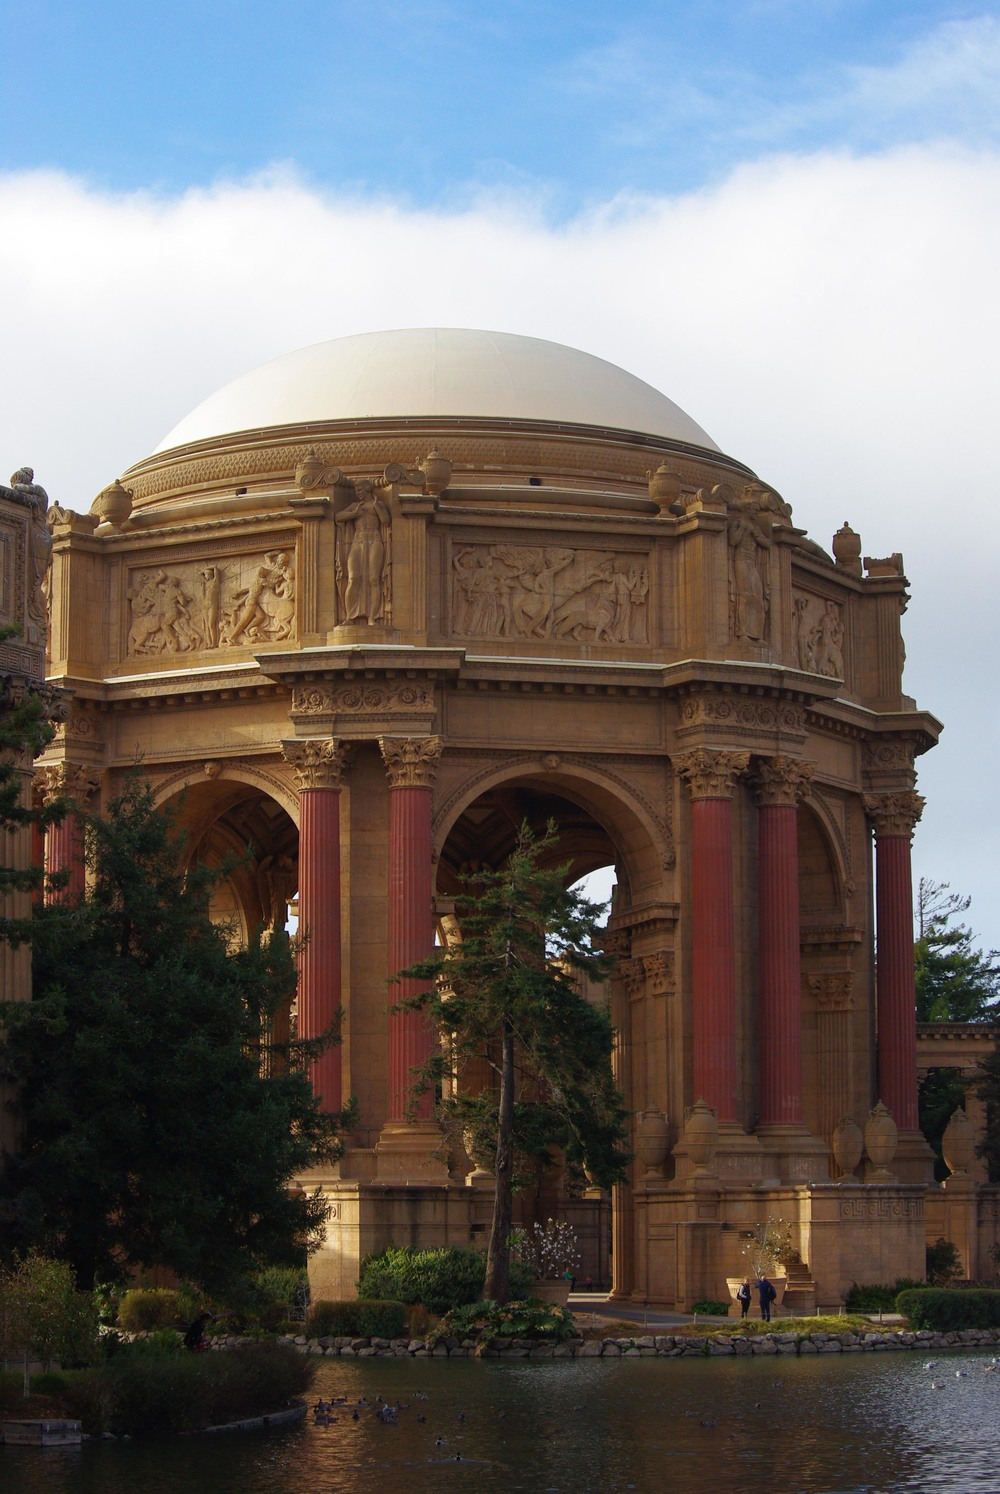 9.	Stroll through the Palace of Fine Arts